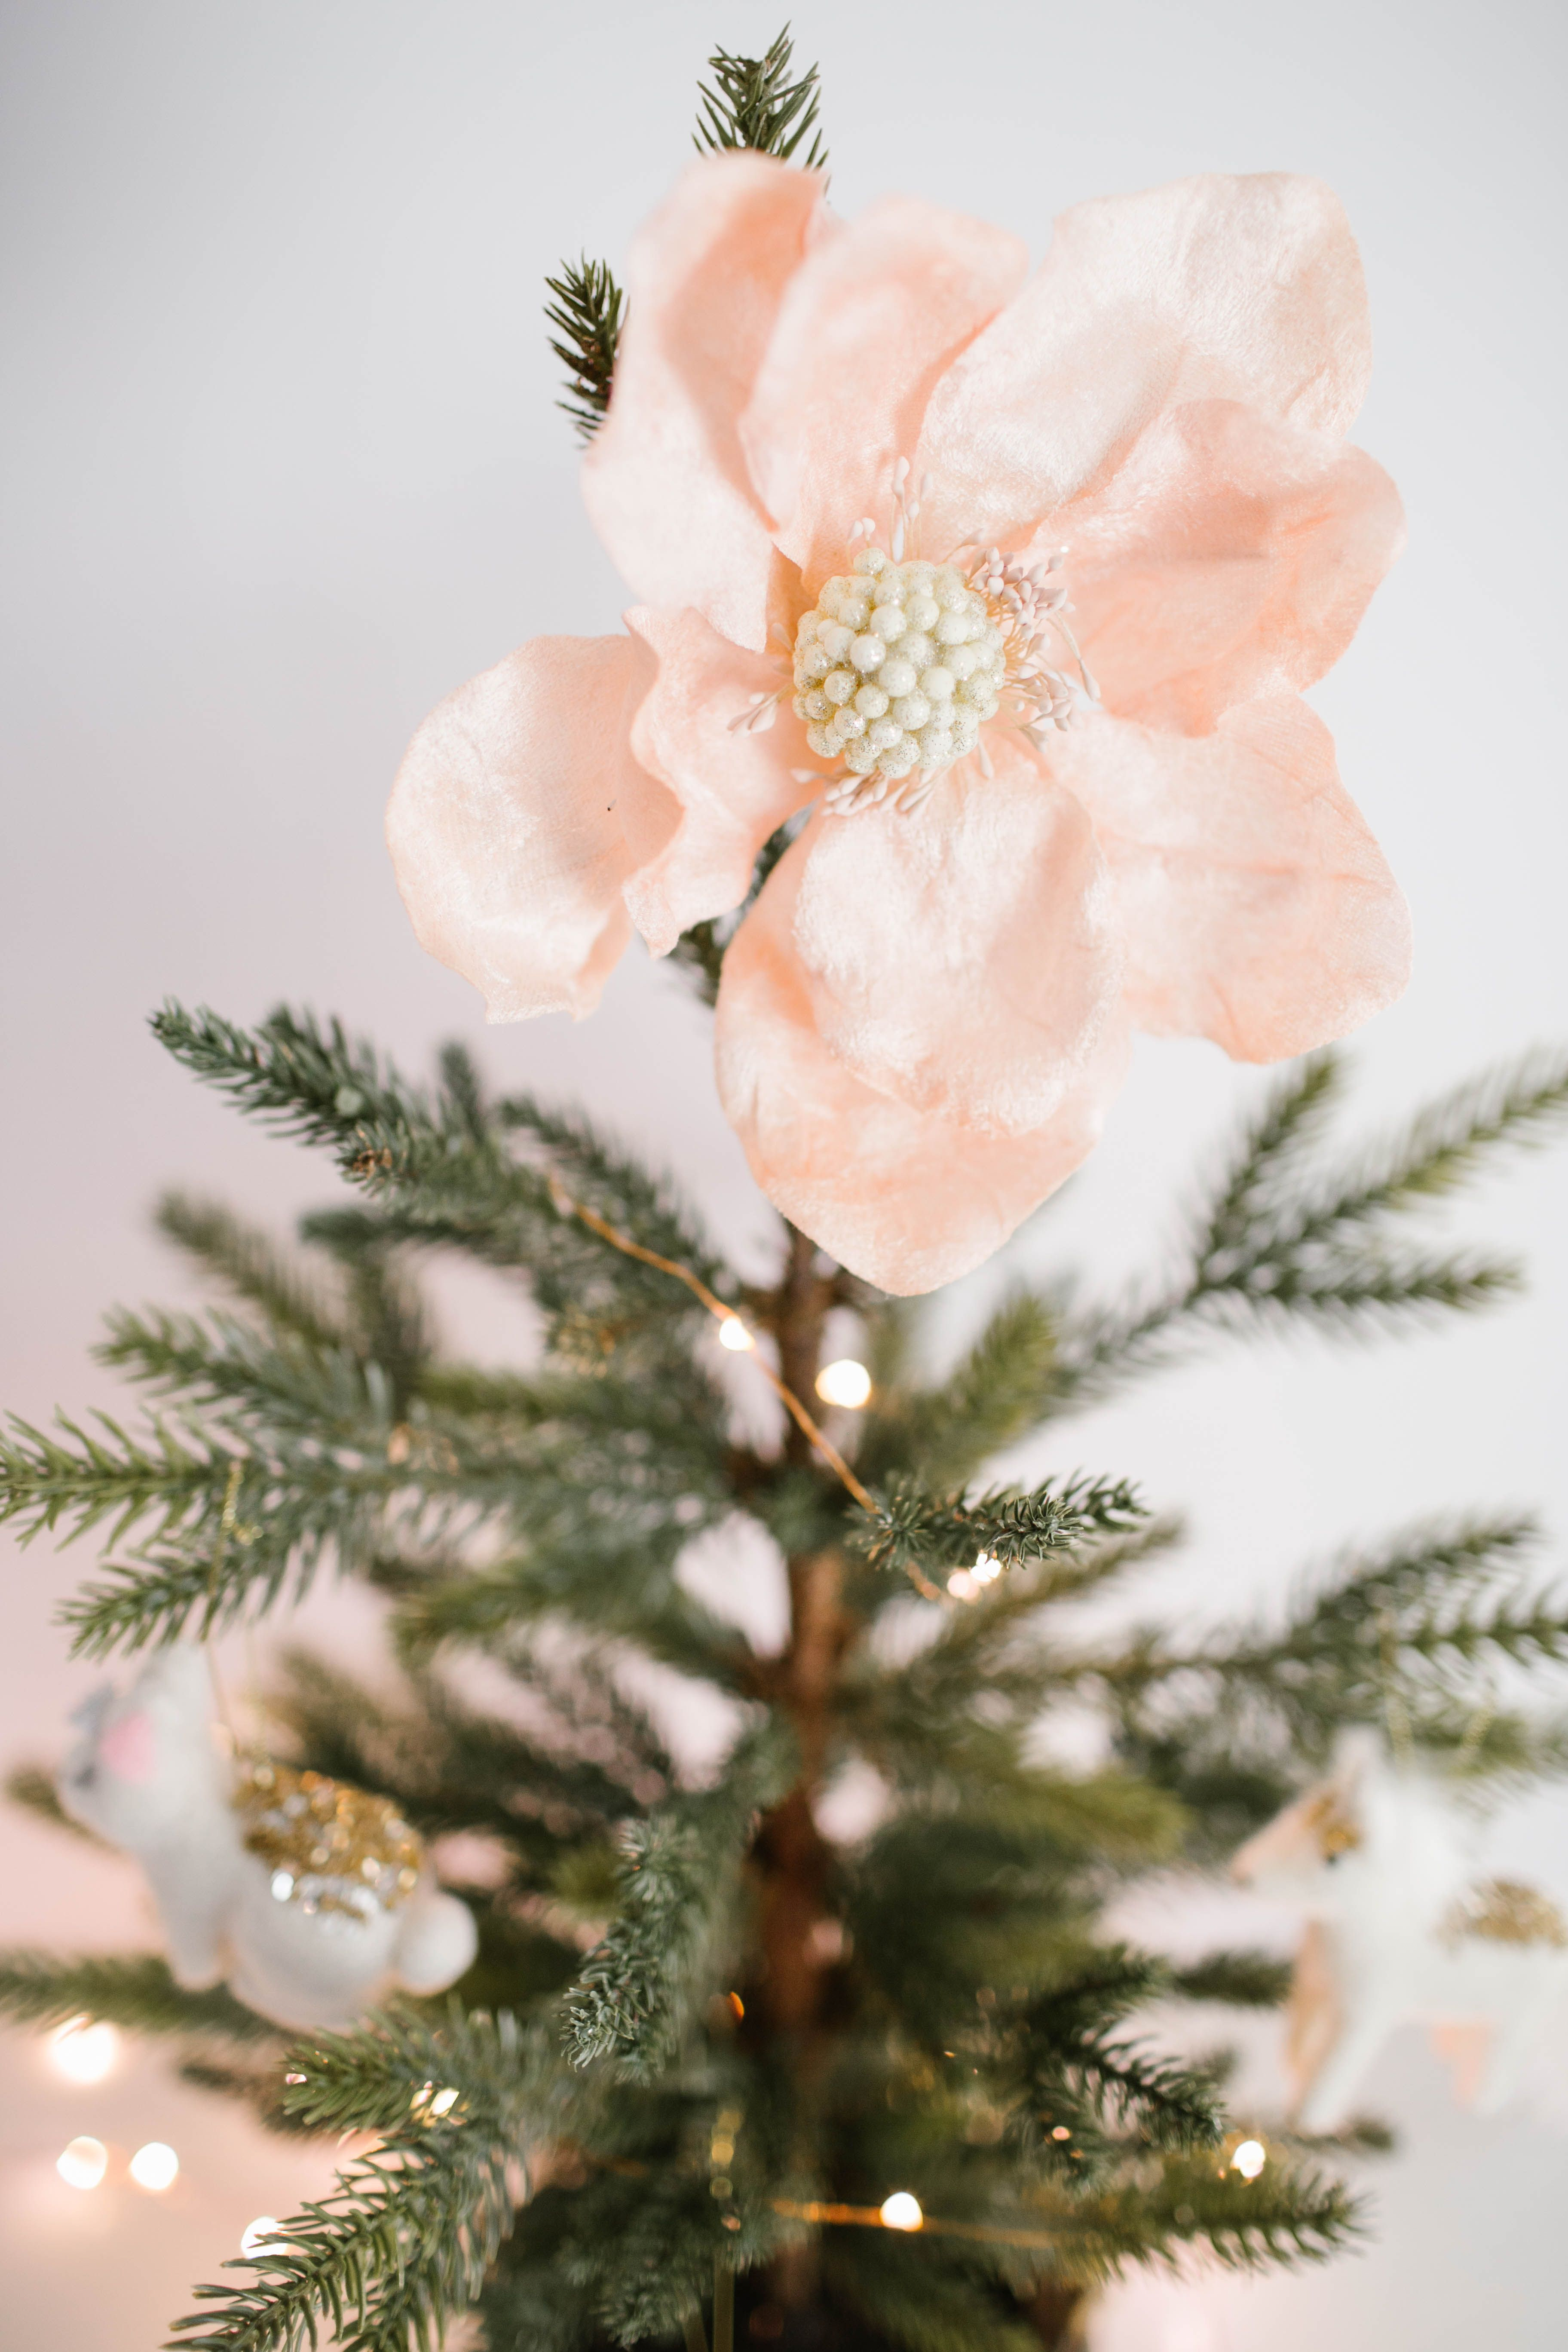 lc lauren conrad flower christmas ornament available at kohls and on kohlscom christmas